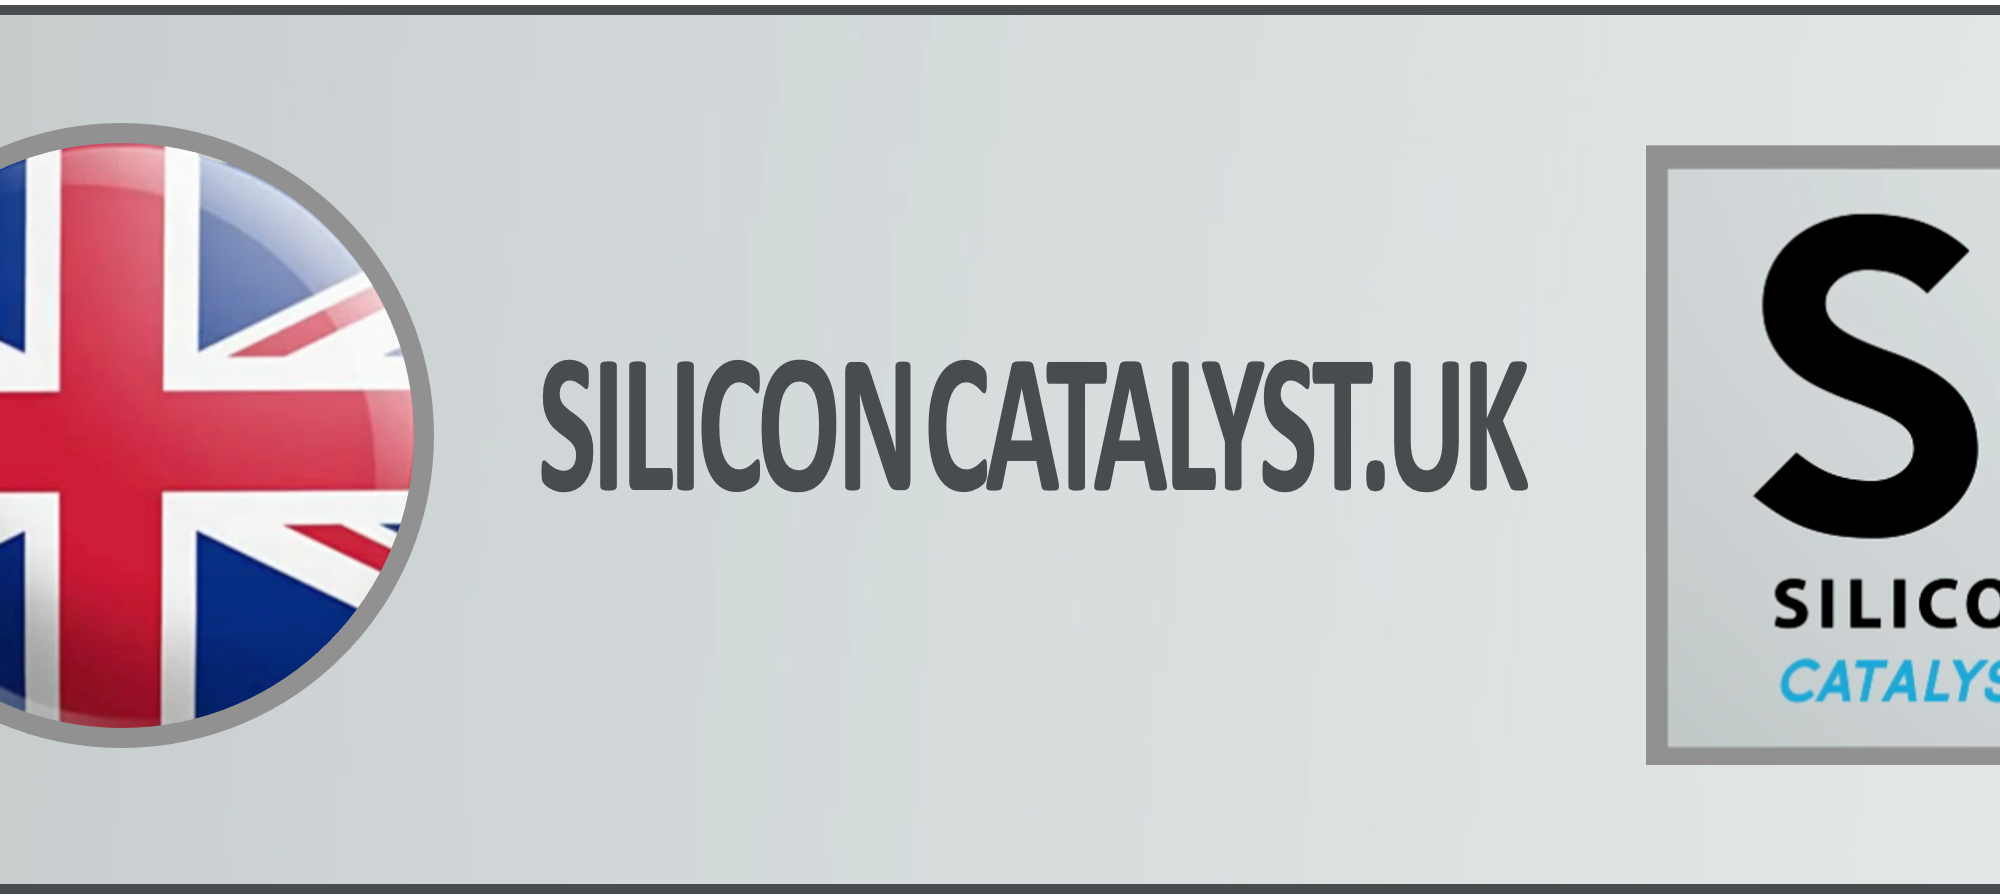 Silicon Catalyst is Bringing Its Unique Startup Platform to the UK